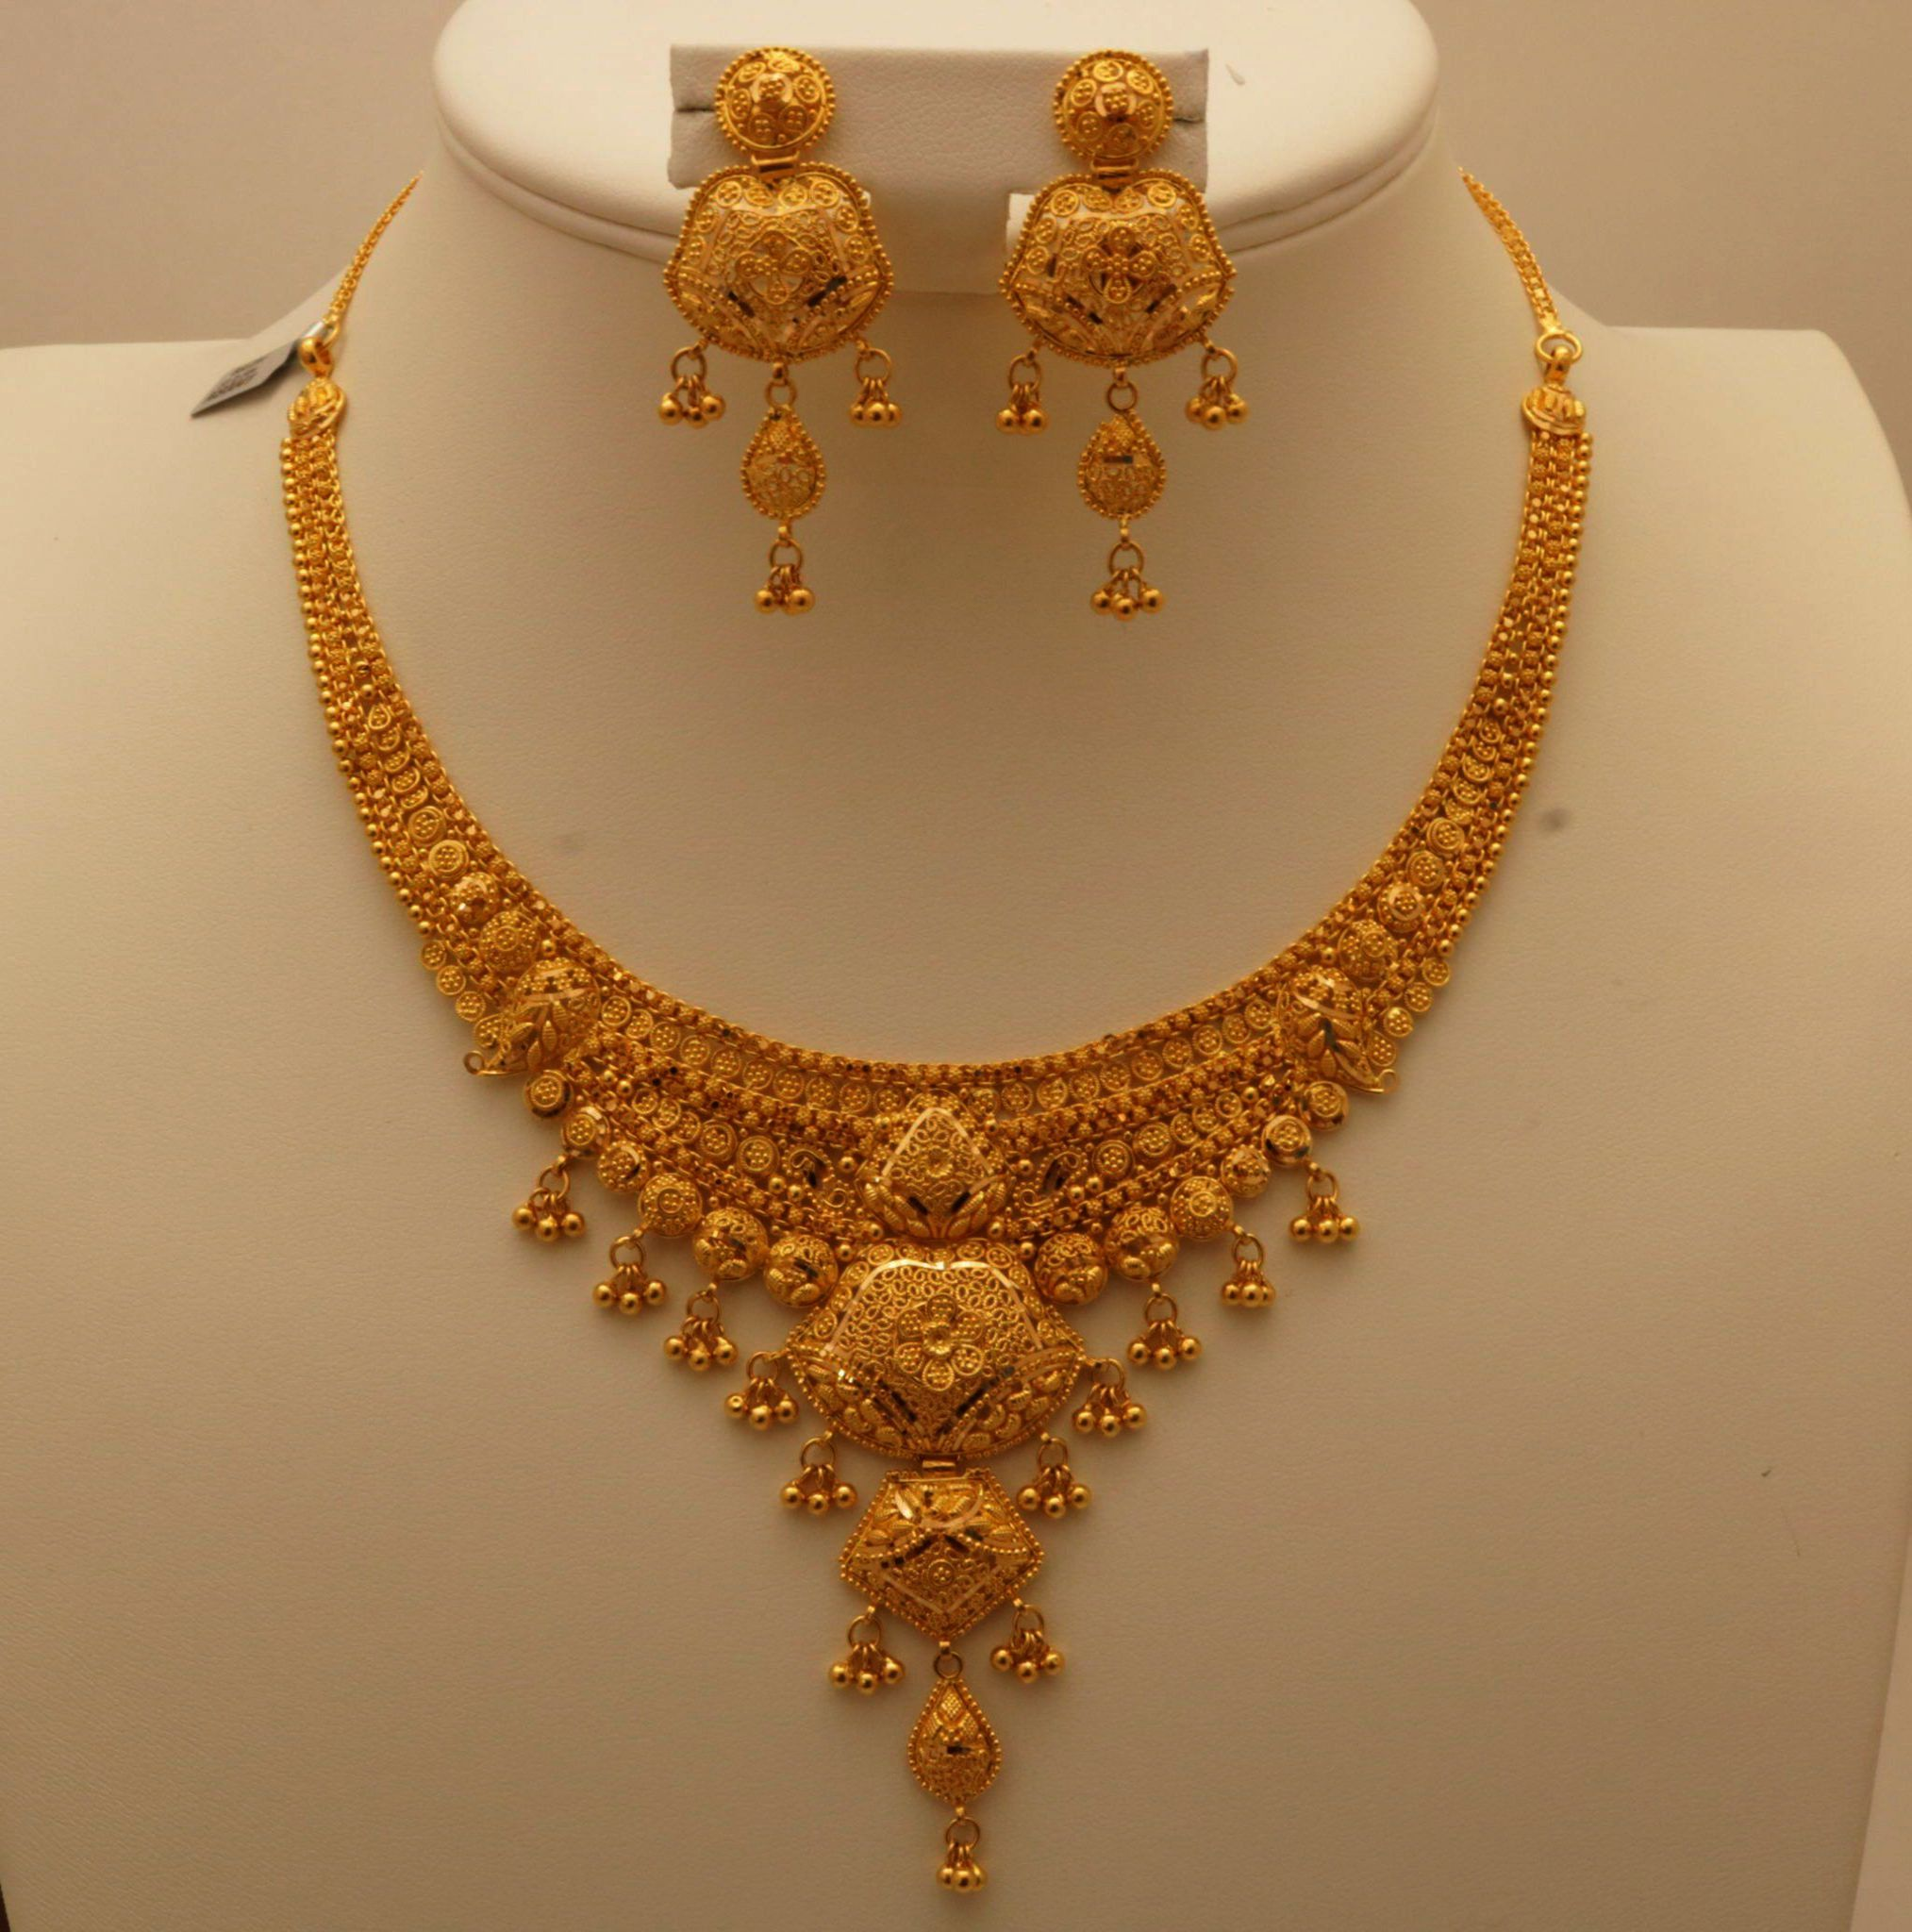 10++ Jewelry shops that buy gold near me viral